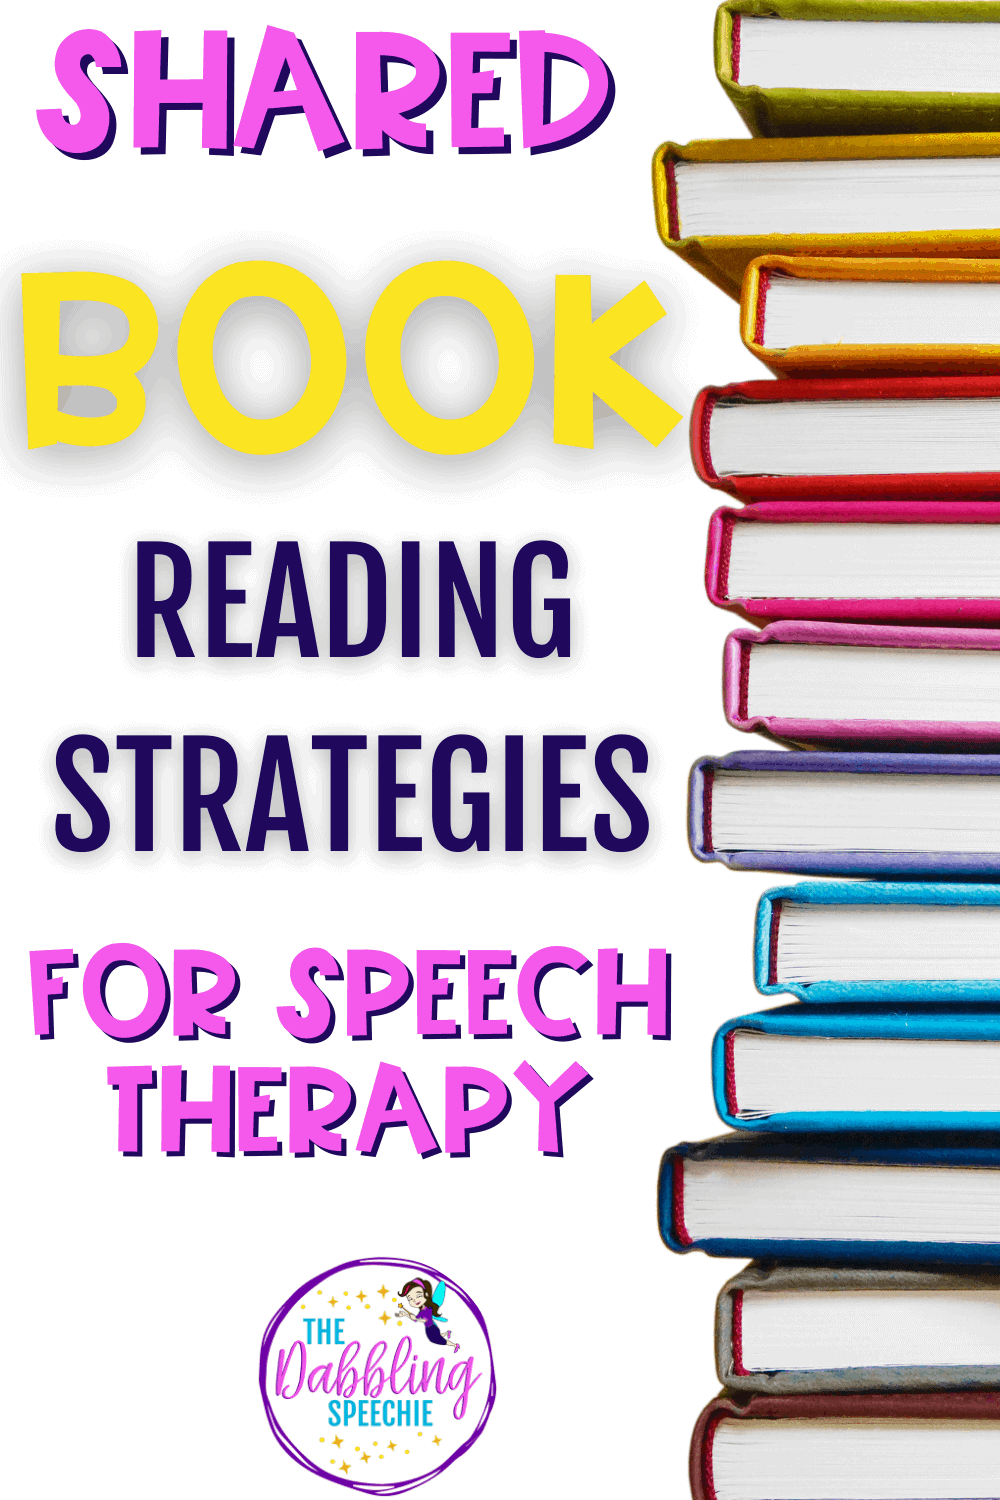 Shared Book Reading Strategies to Build Language